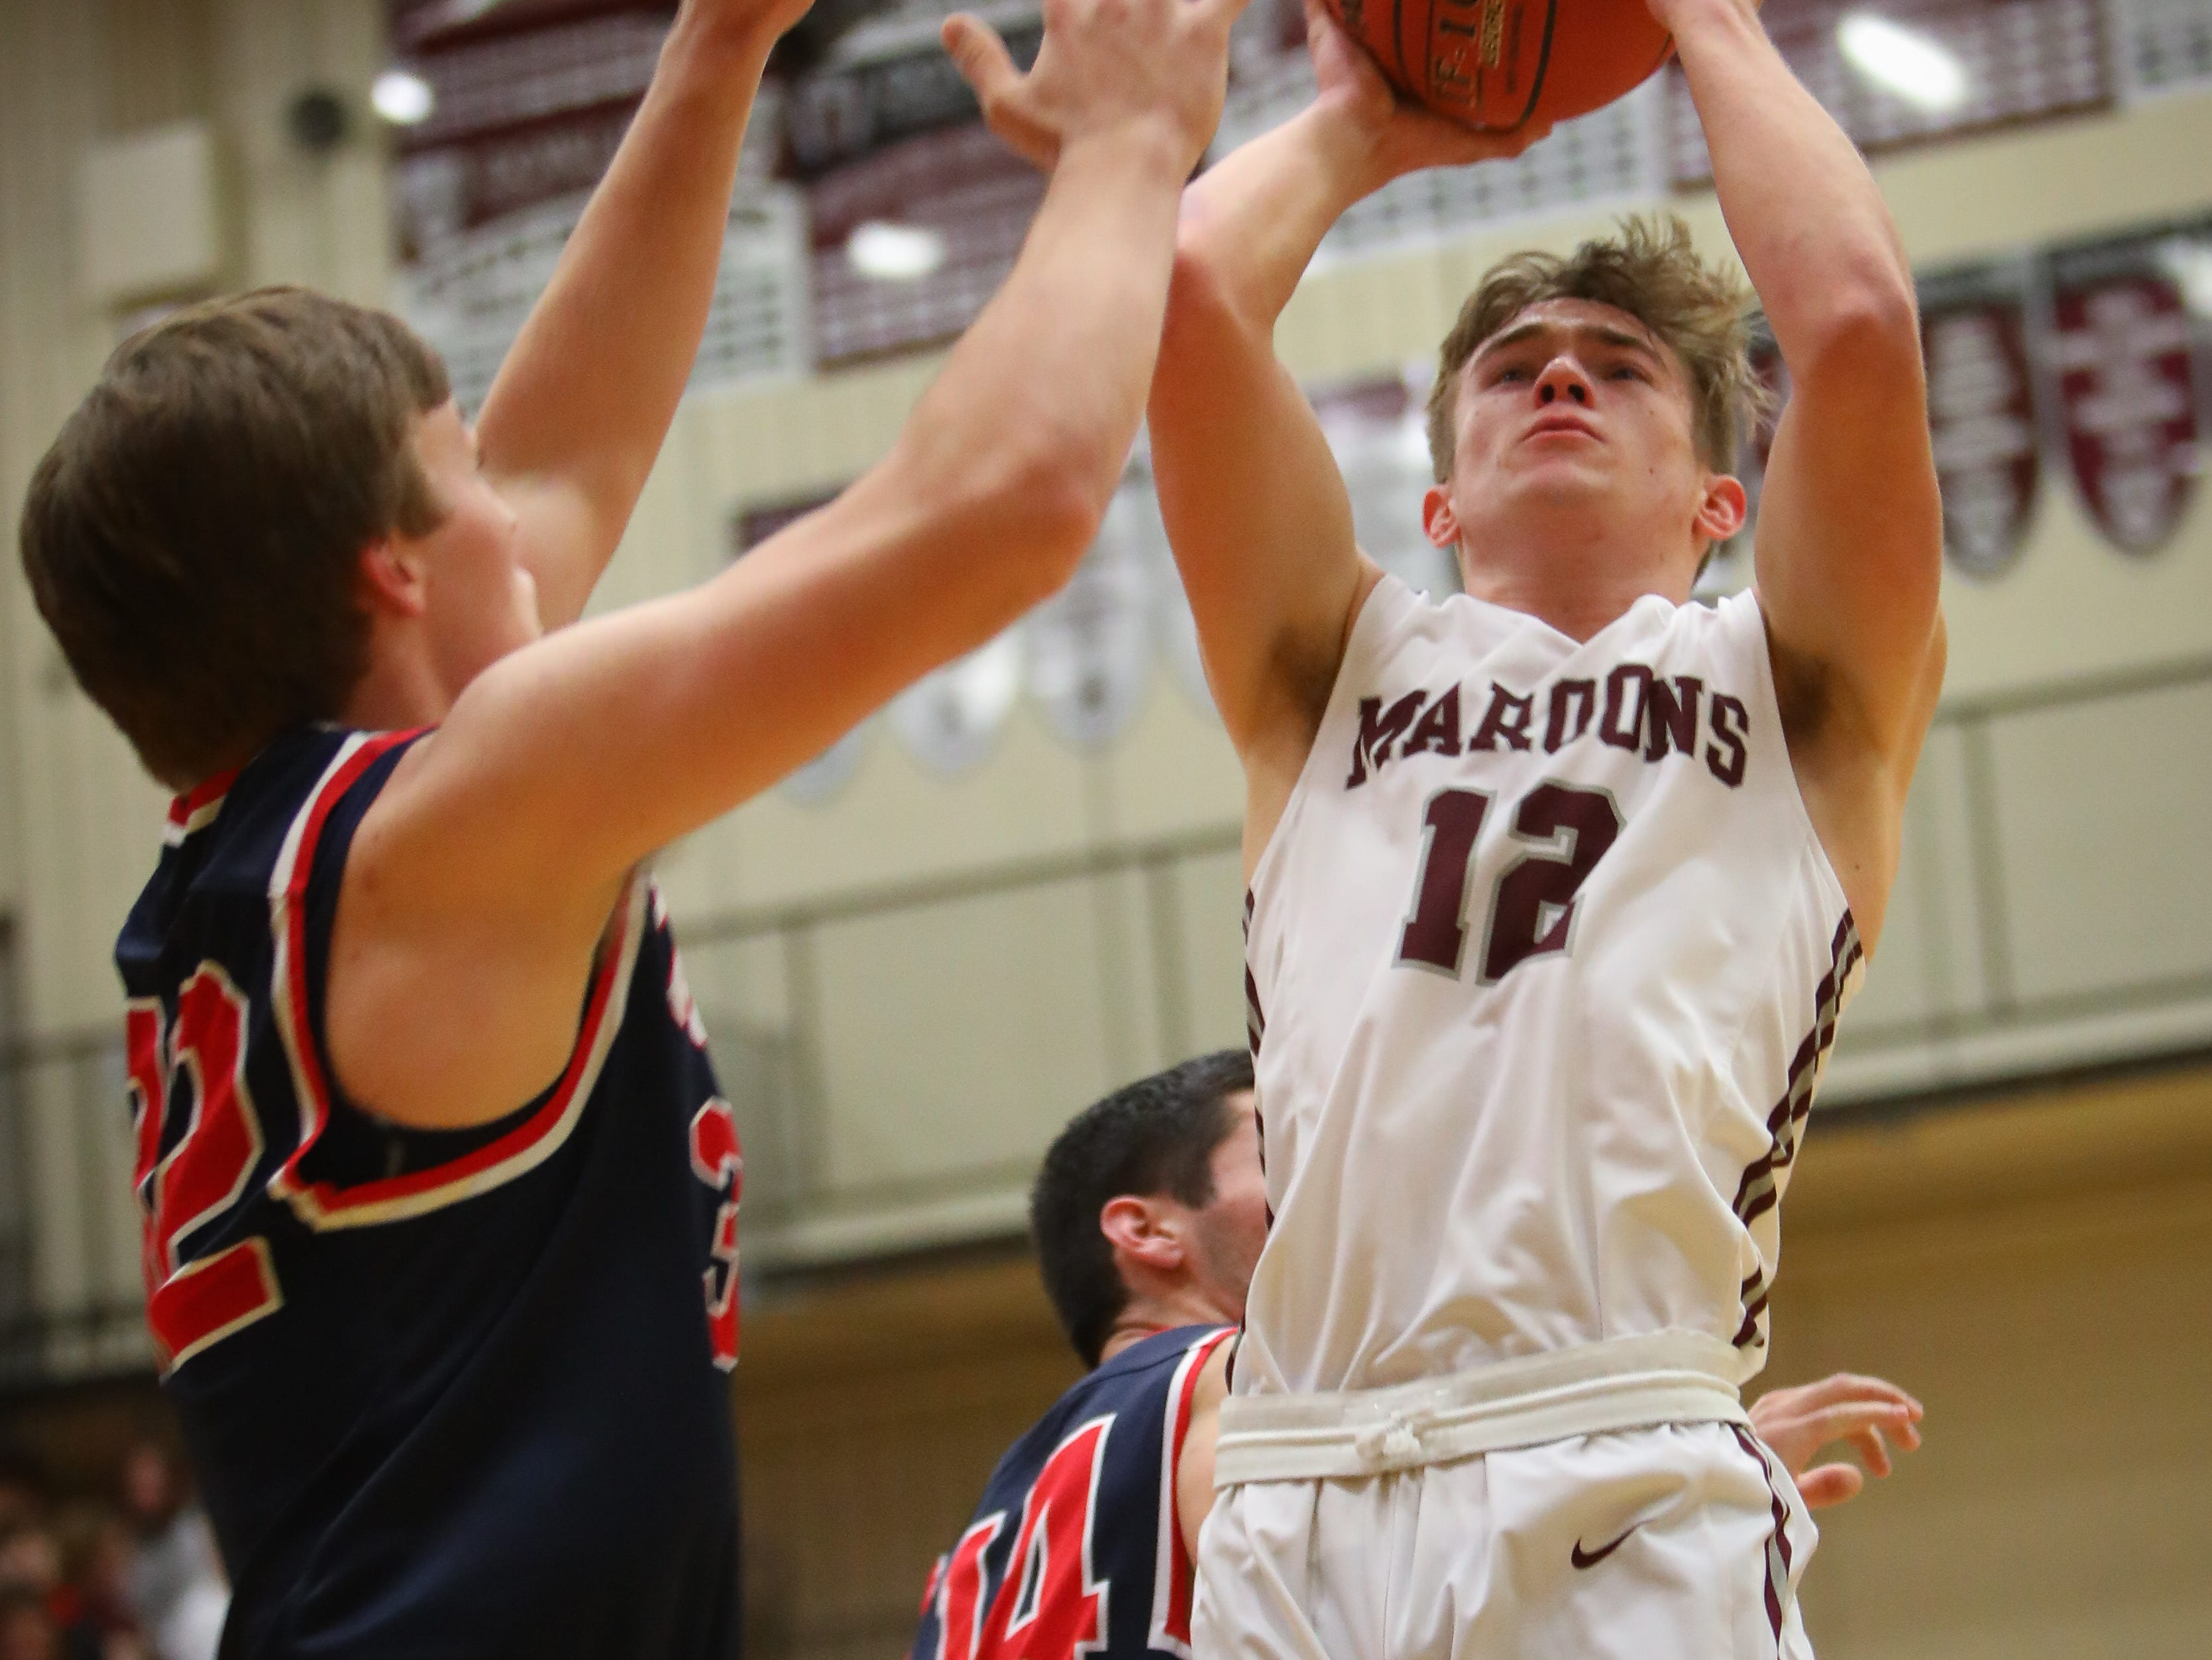 Dowling senior Jack Lyman attempts a jump shot during a boys high school basketball game between the Urbandale J-Hawks and the Dowling Catholic Maroons at Dowling Catholic High School on Jan. 11, 2019 in West Des Moines, Iowa.